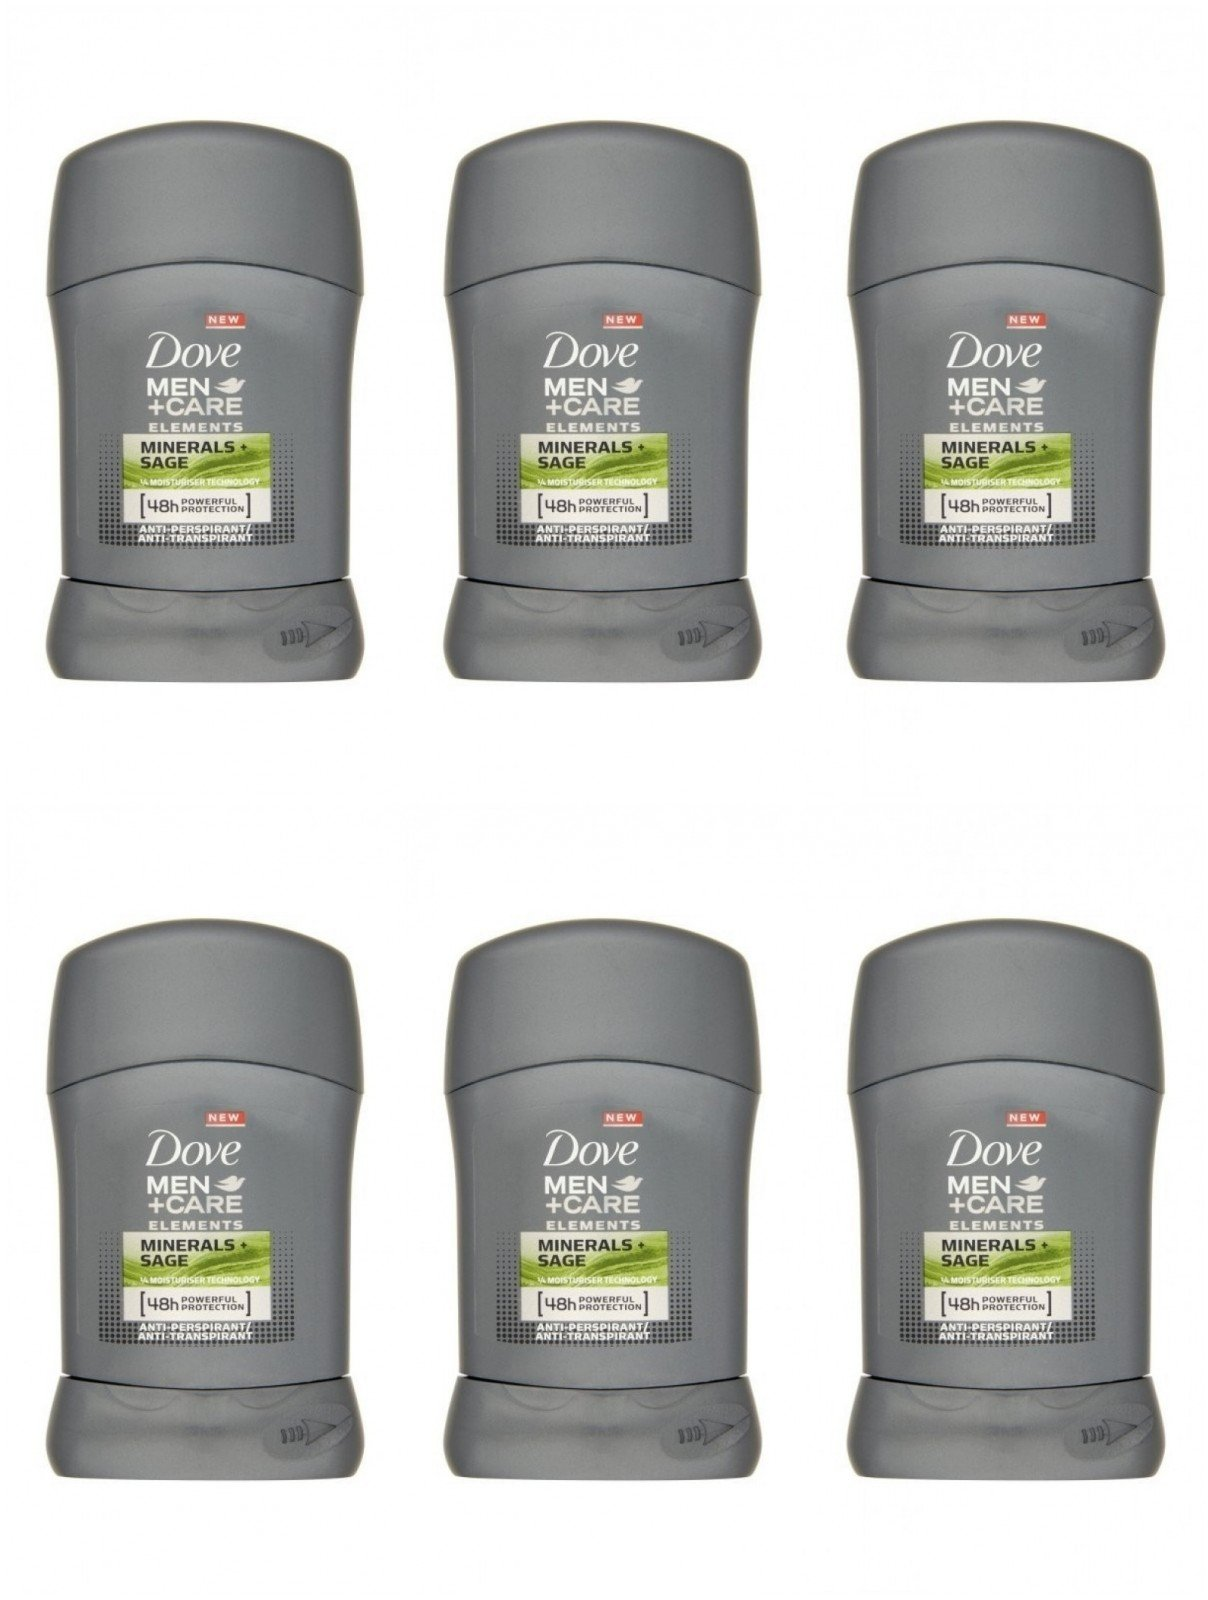 Dove Men's Deodorant Stick Minerals And Sage 1.69 Oz Travel Size (Pack of 6)